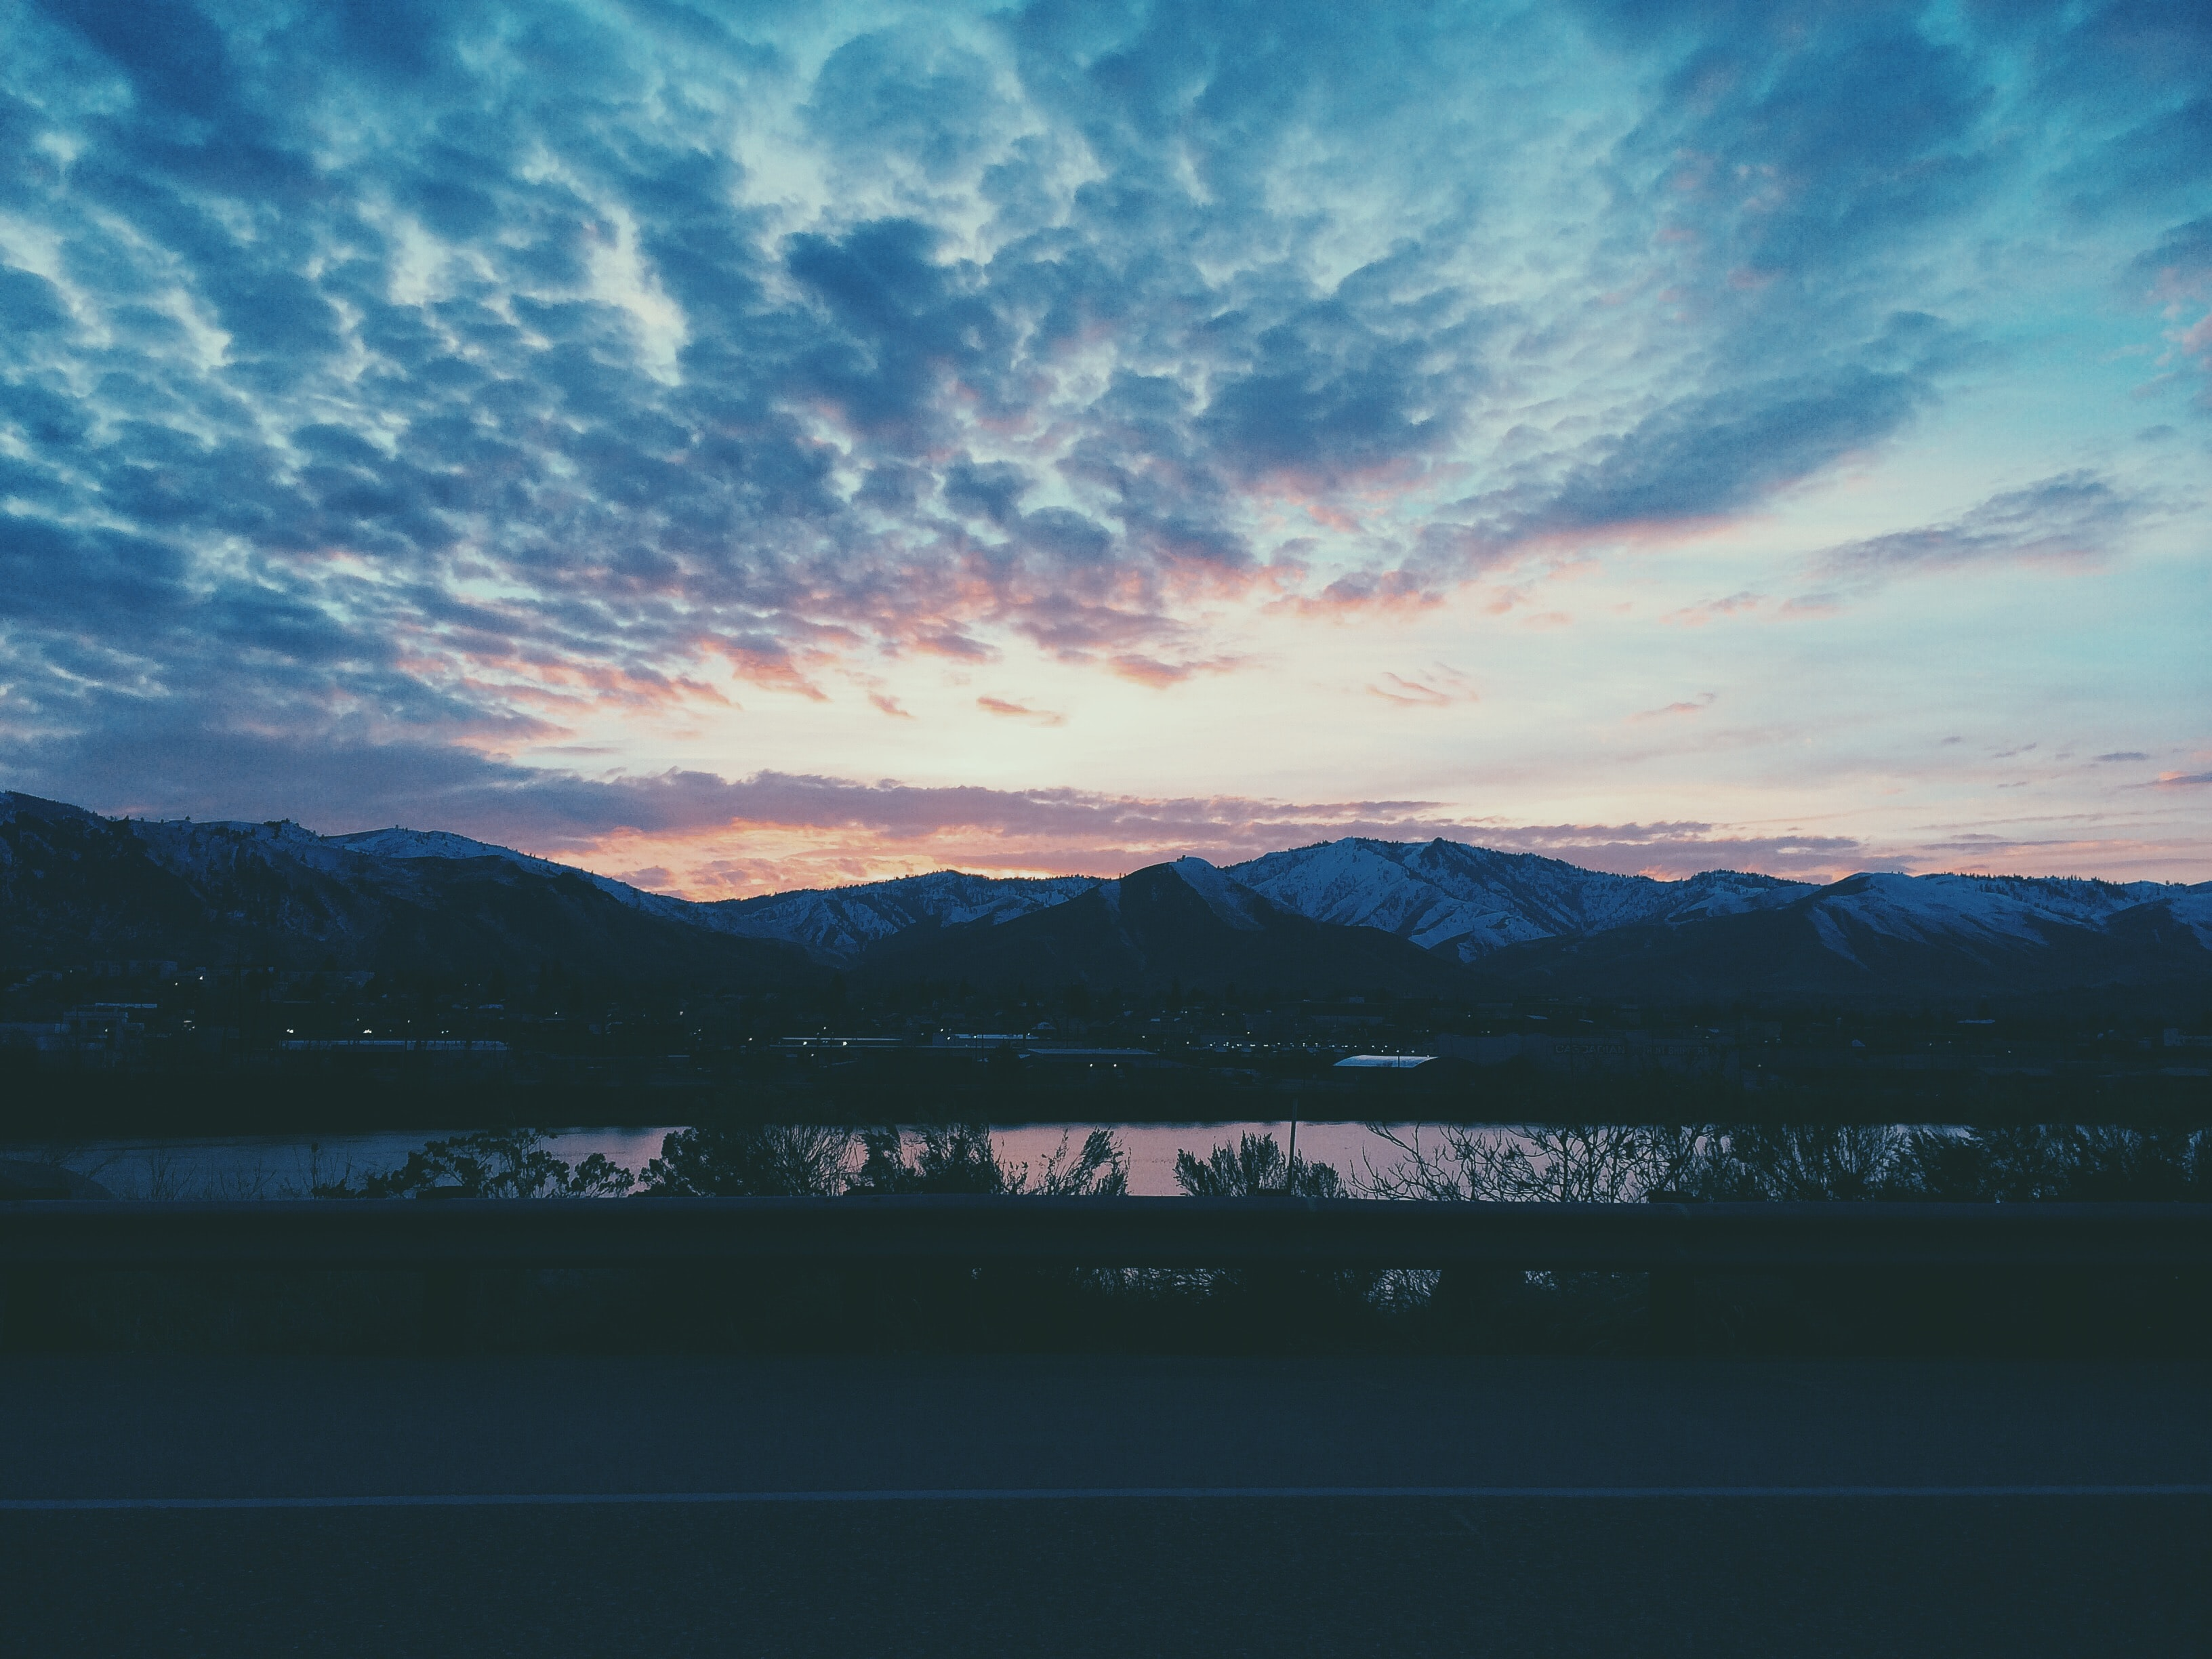 Late evening capture near the beach of East Wenatchee, United States as the city settles for the night